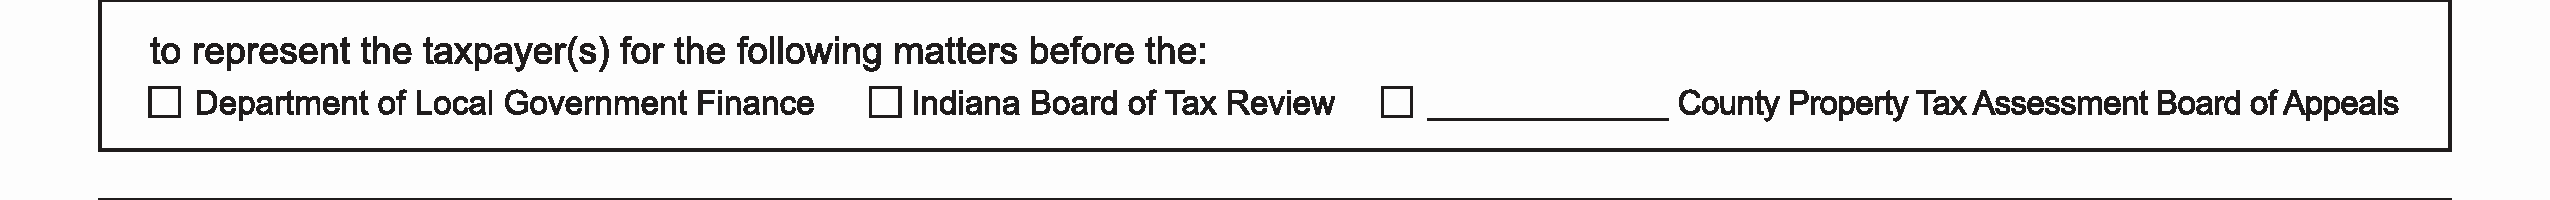 Indiana Tax Power of Attorney (Form 23261) (R76-10)